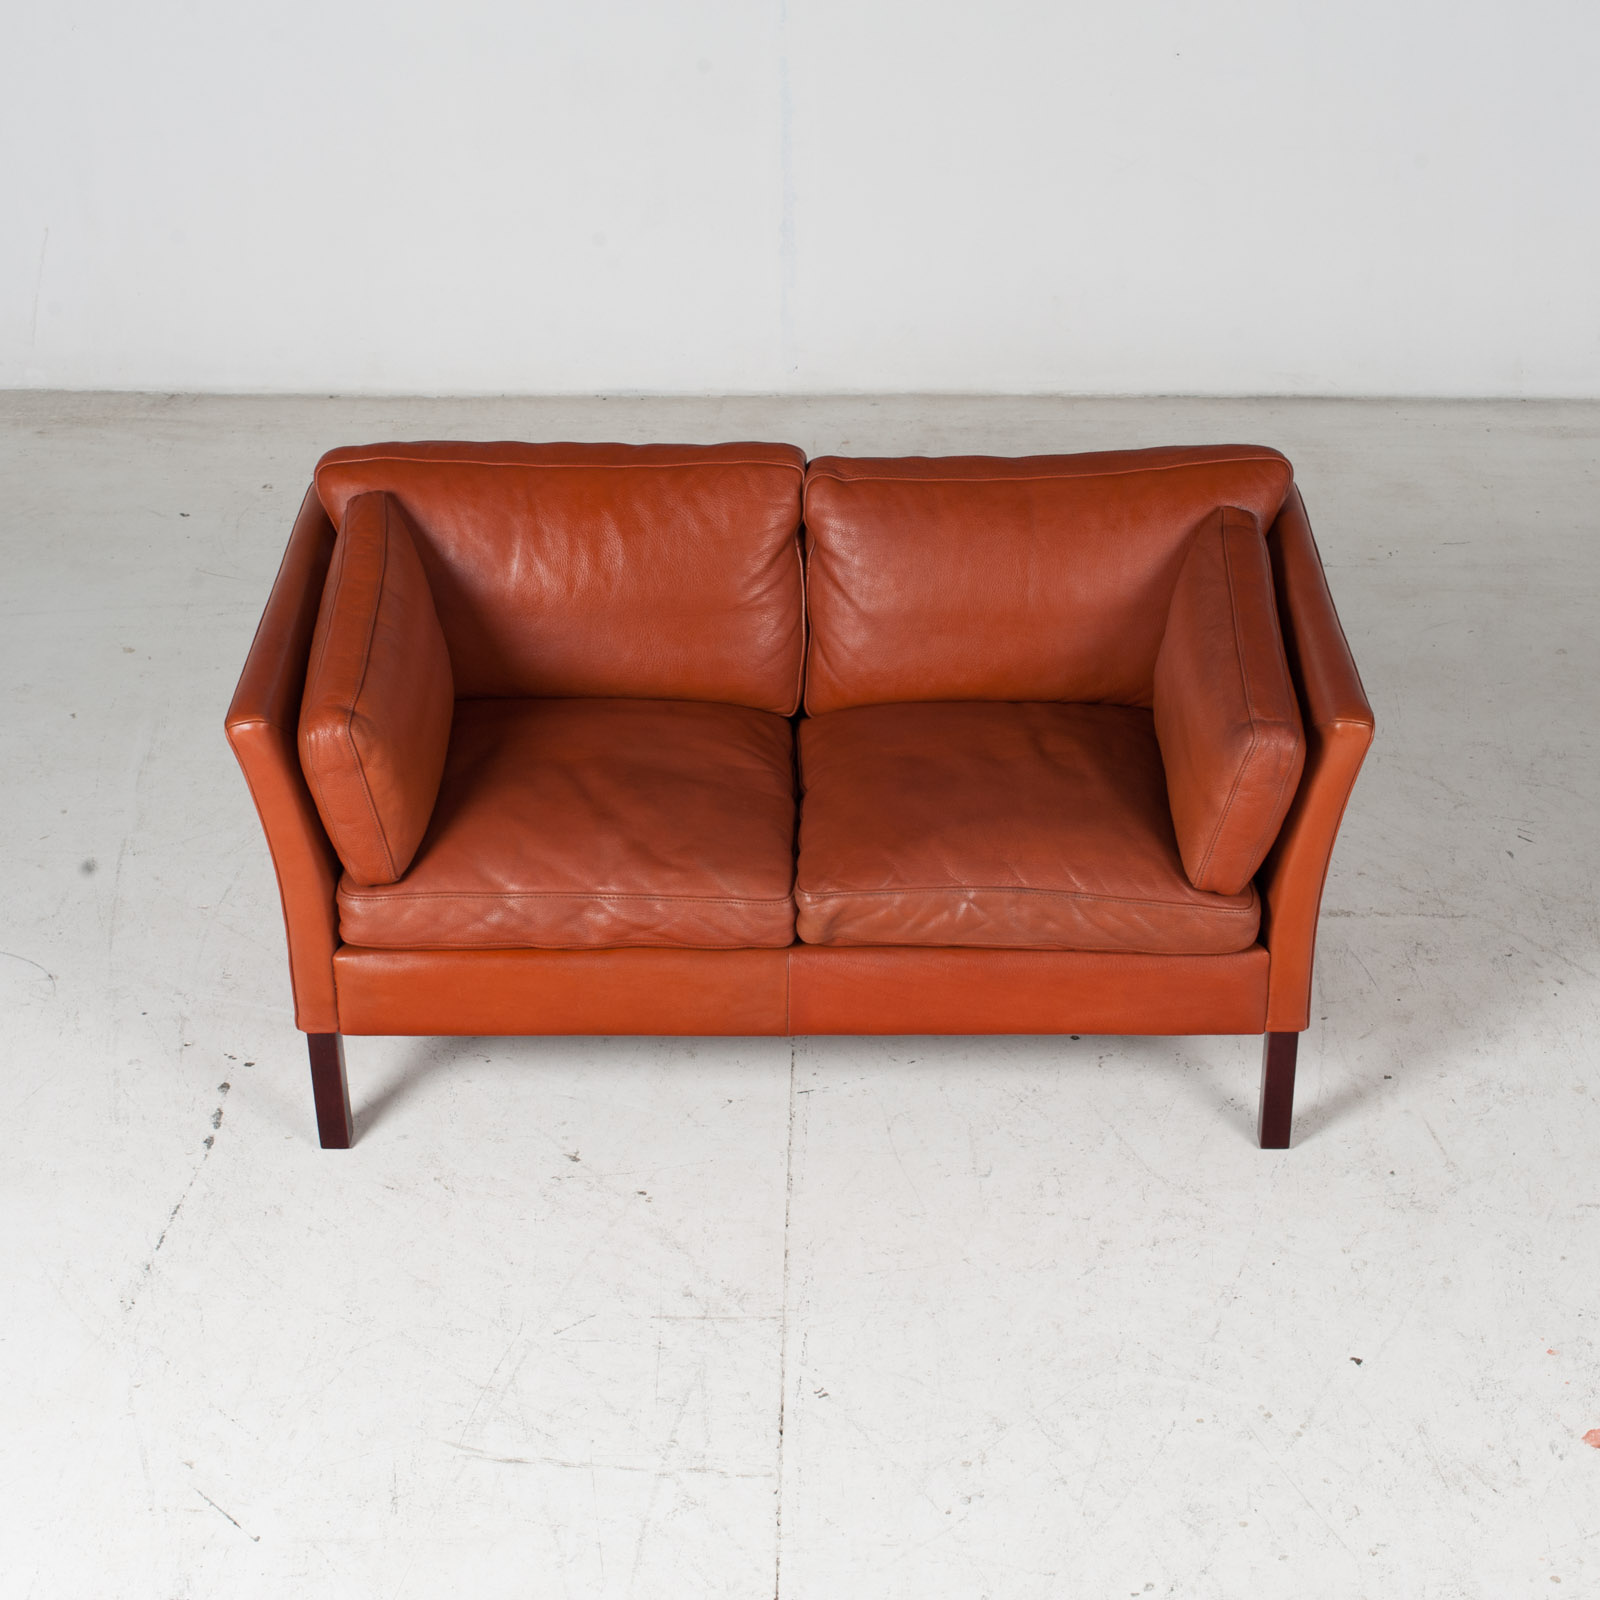 2 Seat Sofa By Stouby In Tan Leather, 1960s, Denmark 3